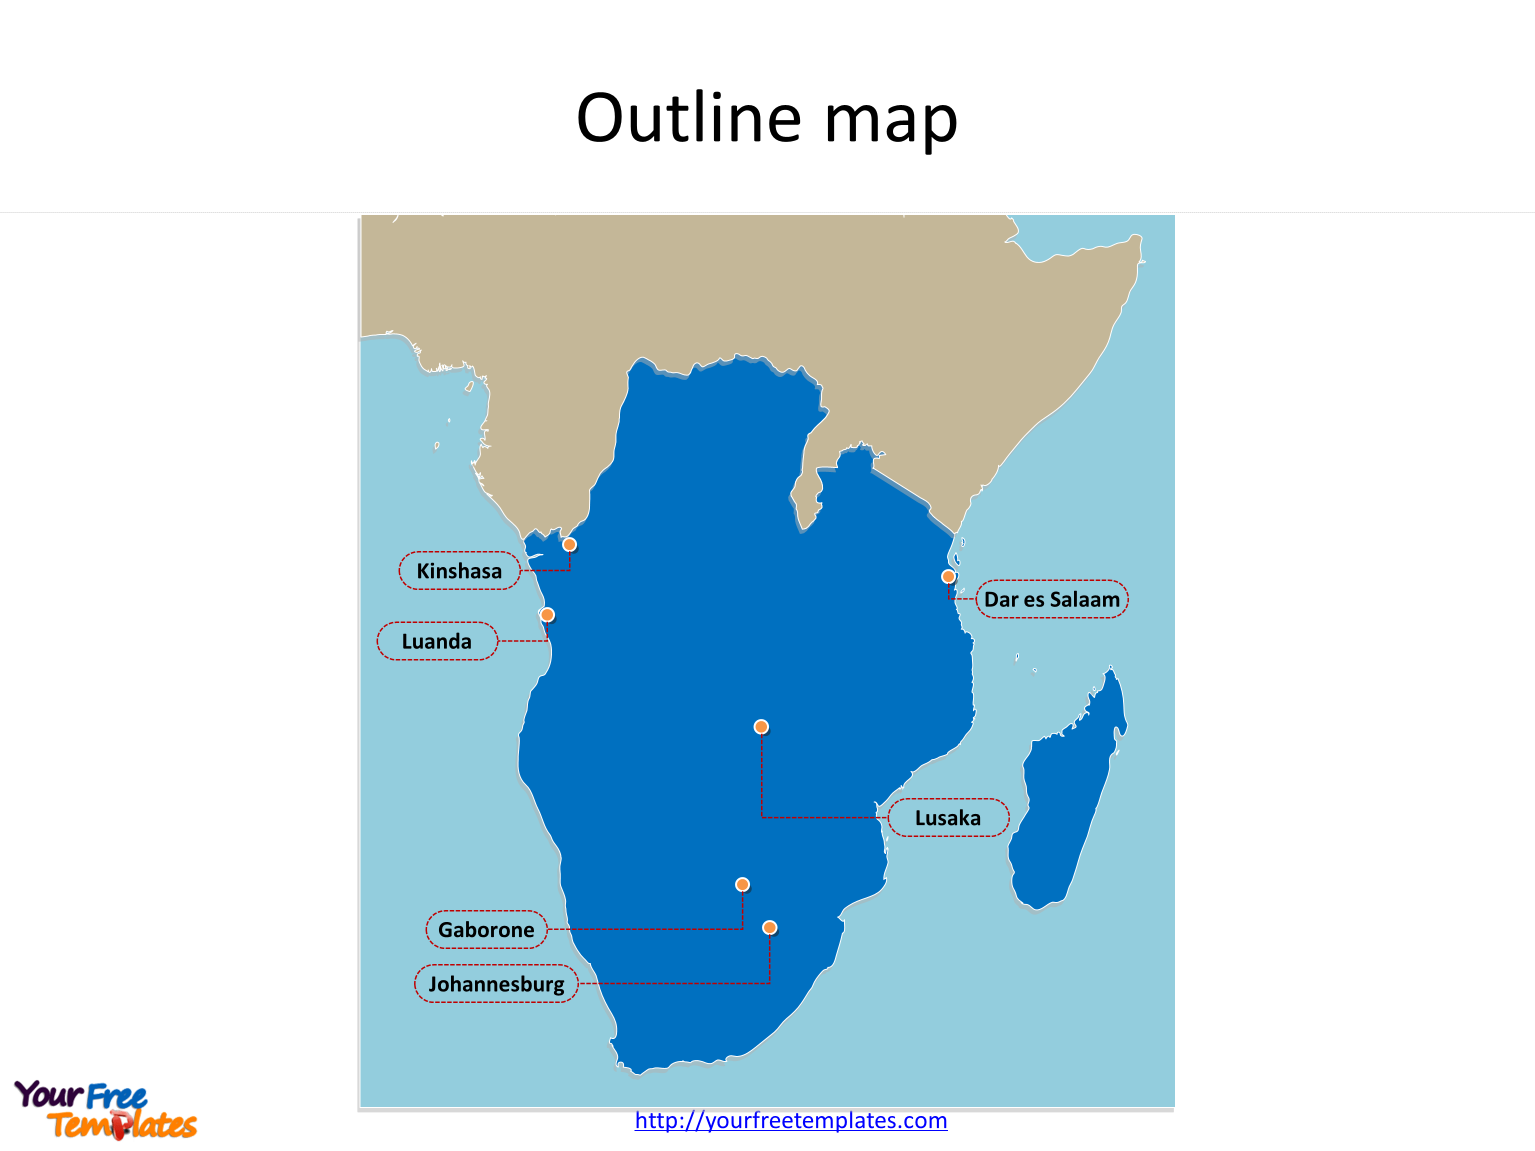 Map of SADC countries with outline and cities labeled on the SADC countries Map templates